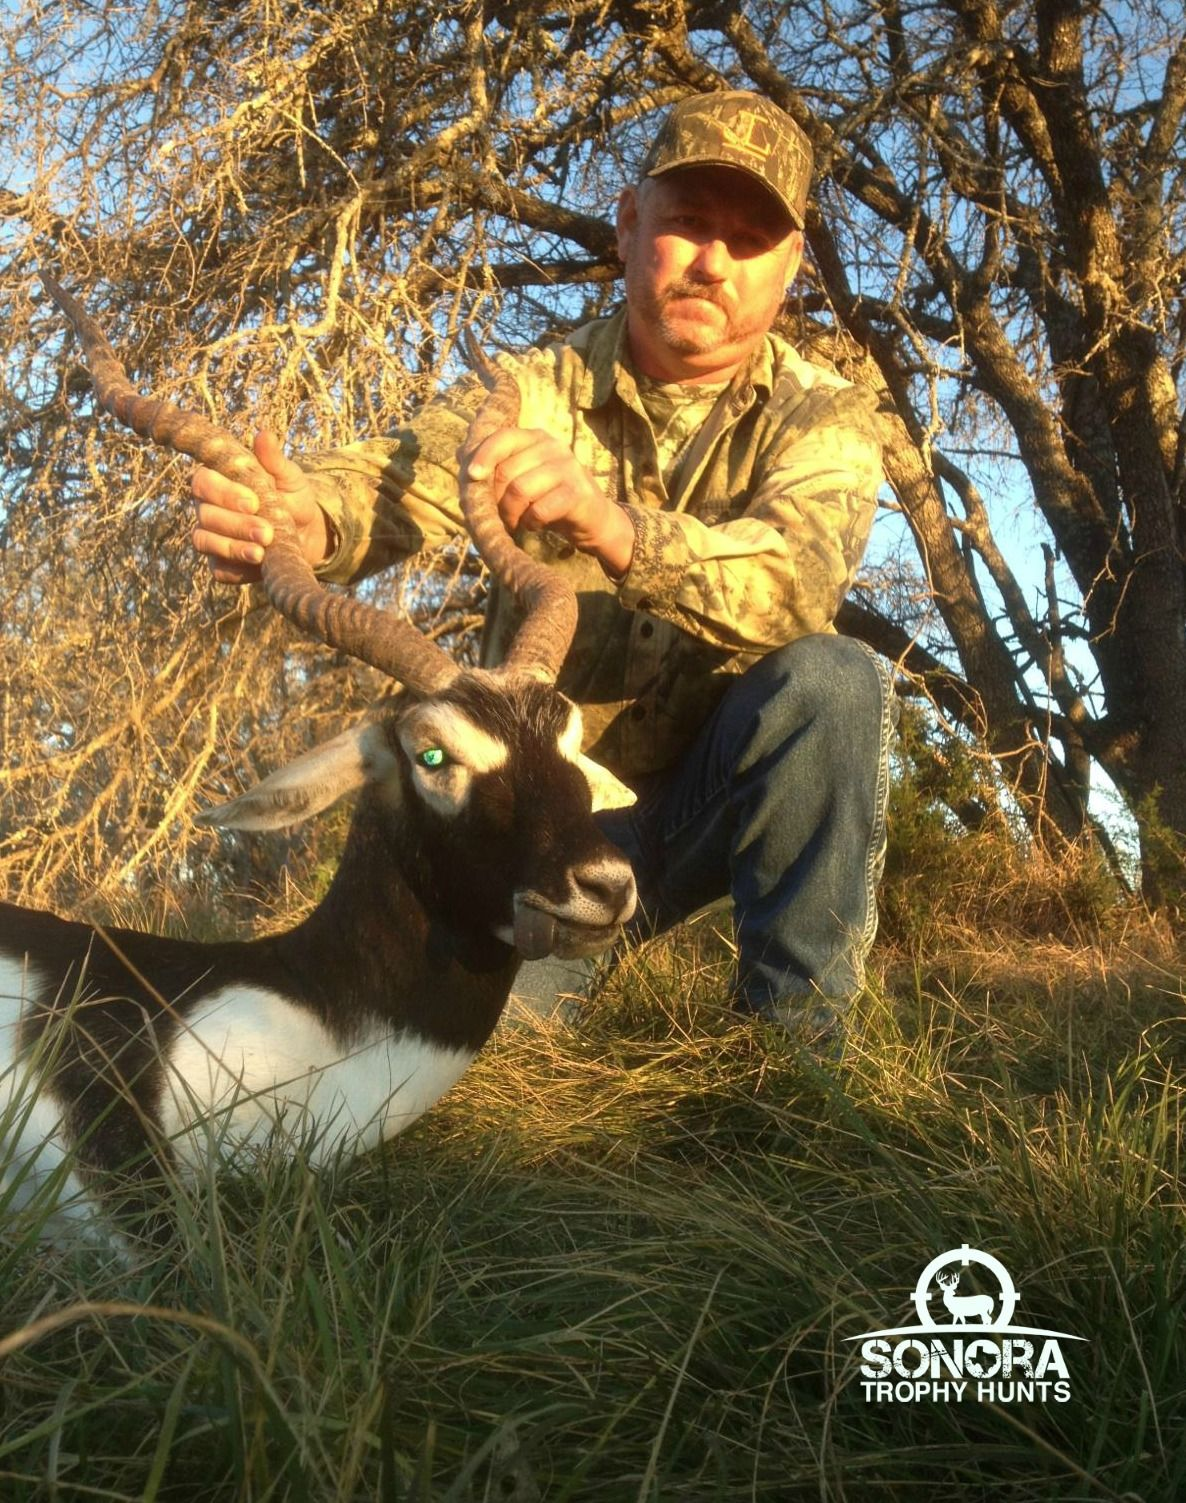 Congrats Gary for getting this black buck at Sonora Trophy